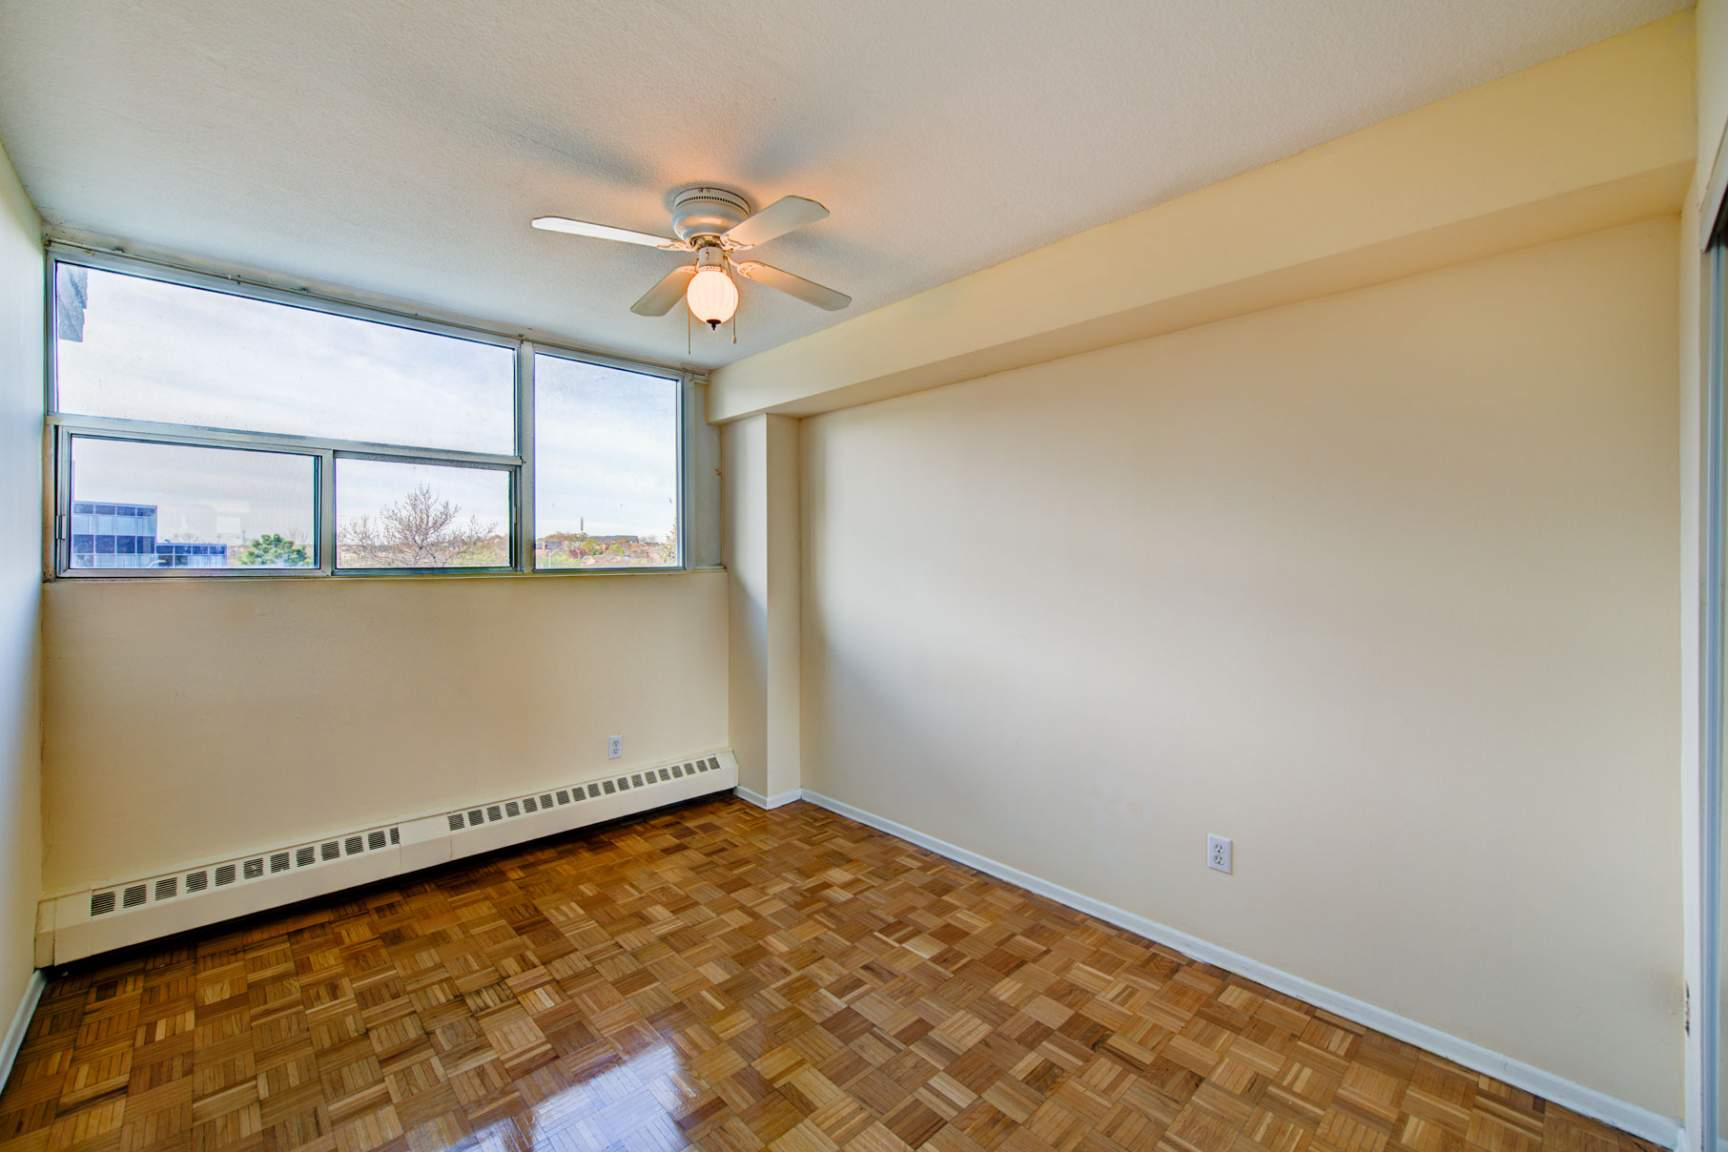 1 bedroom Apartments for rent in Mississauga at Royal Tower - Photo 13 - RentersPages – L138874